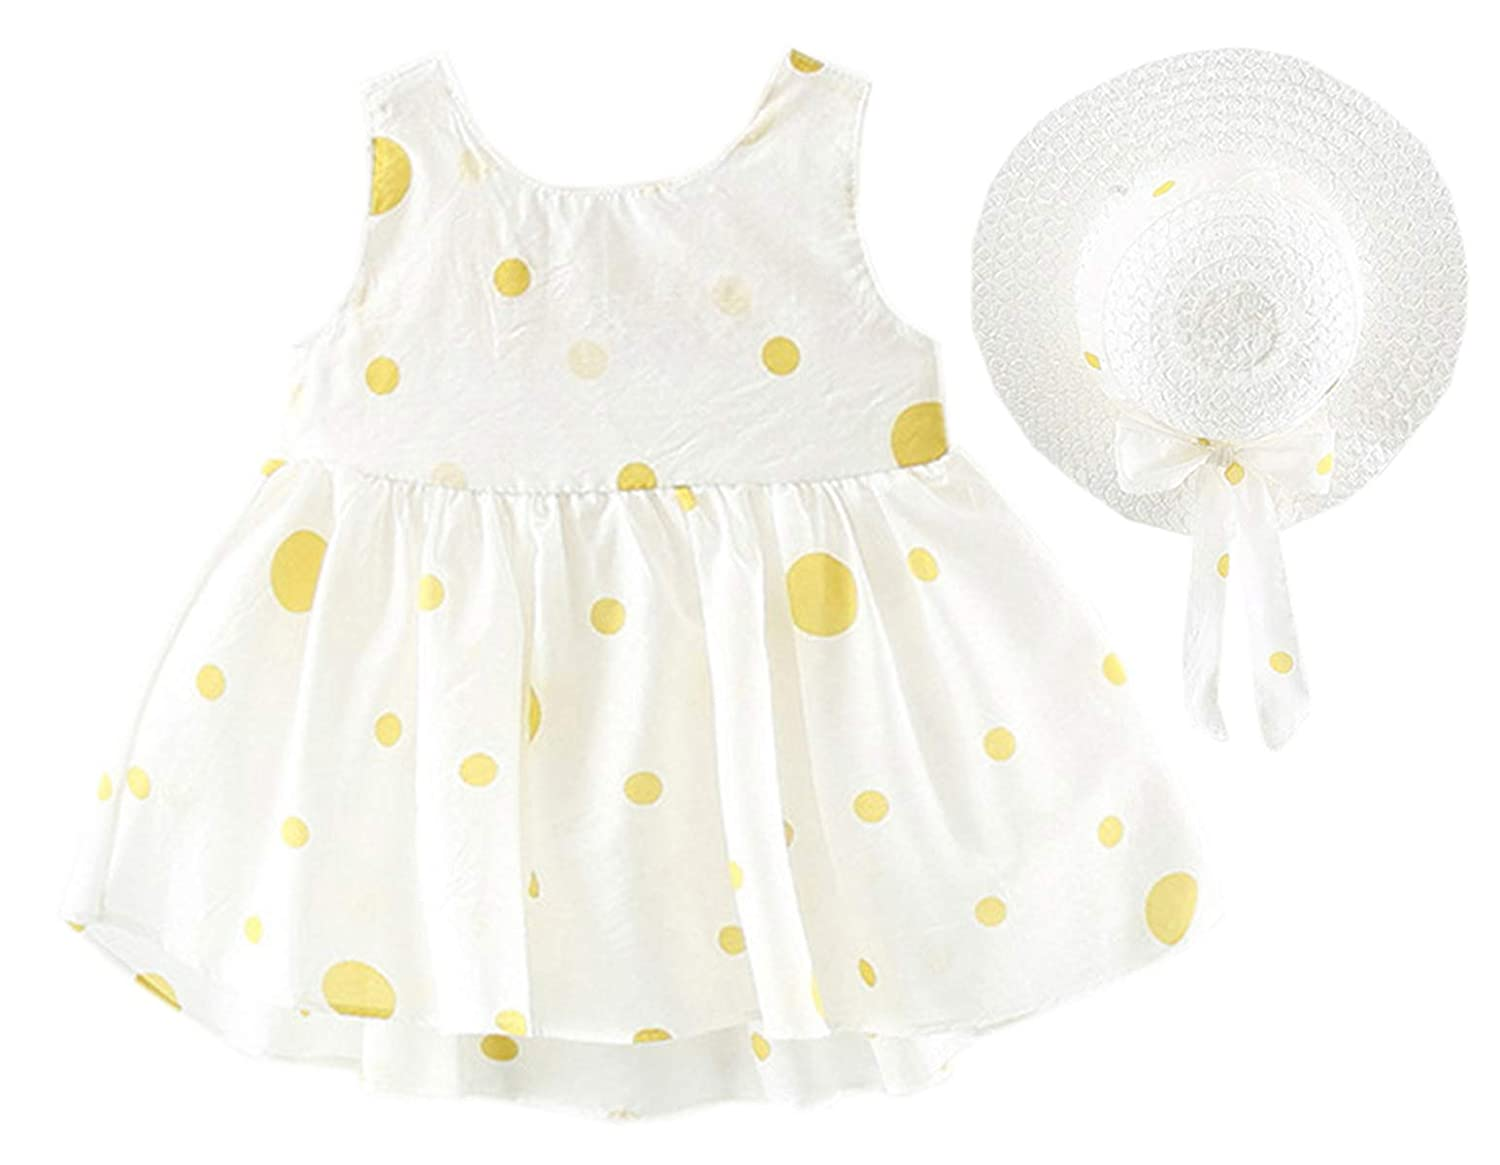 3 Years 6 Month Baby Girls Dress Outfit with Sun Hat